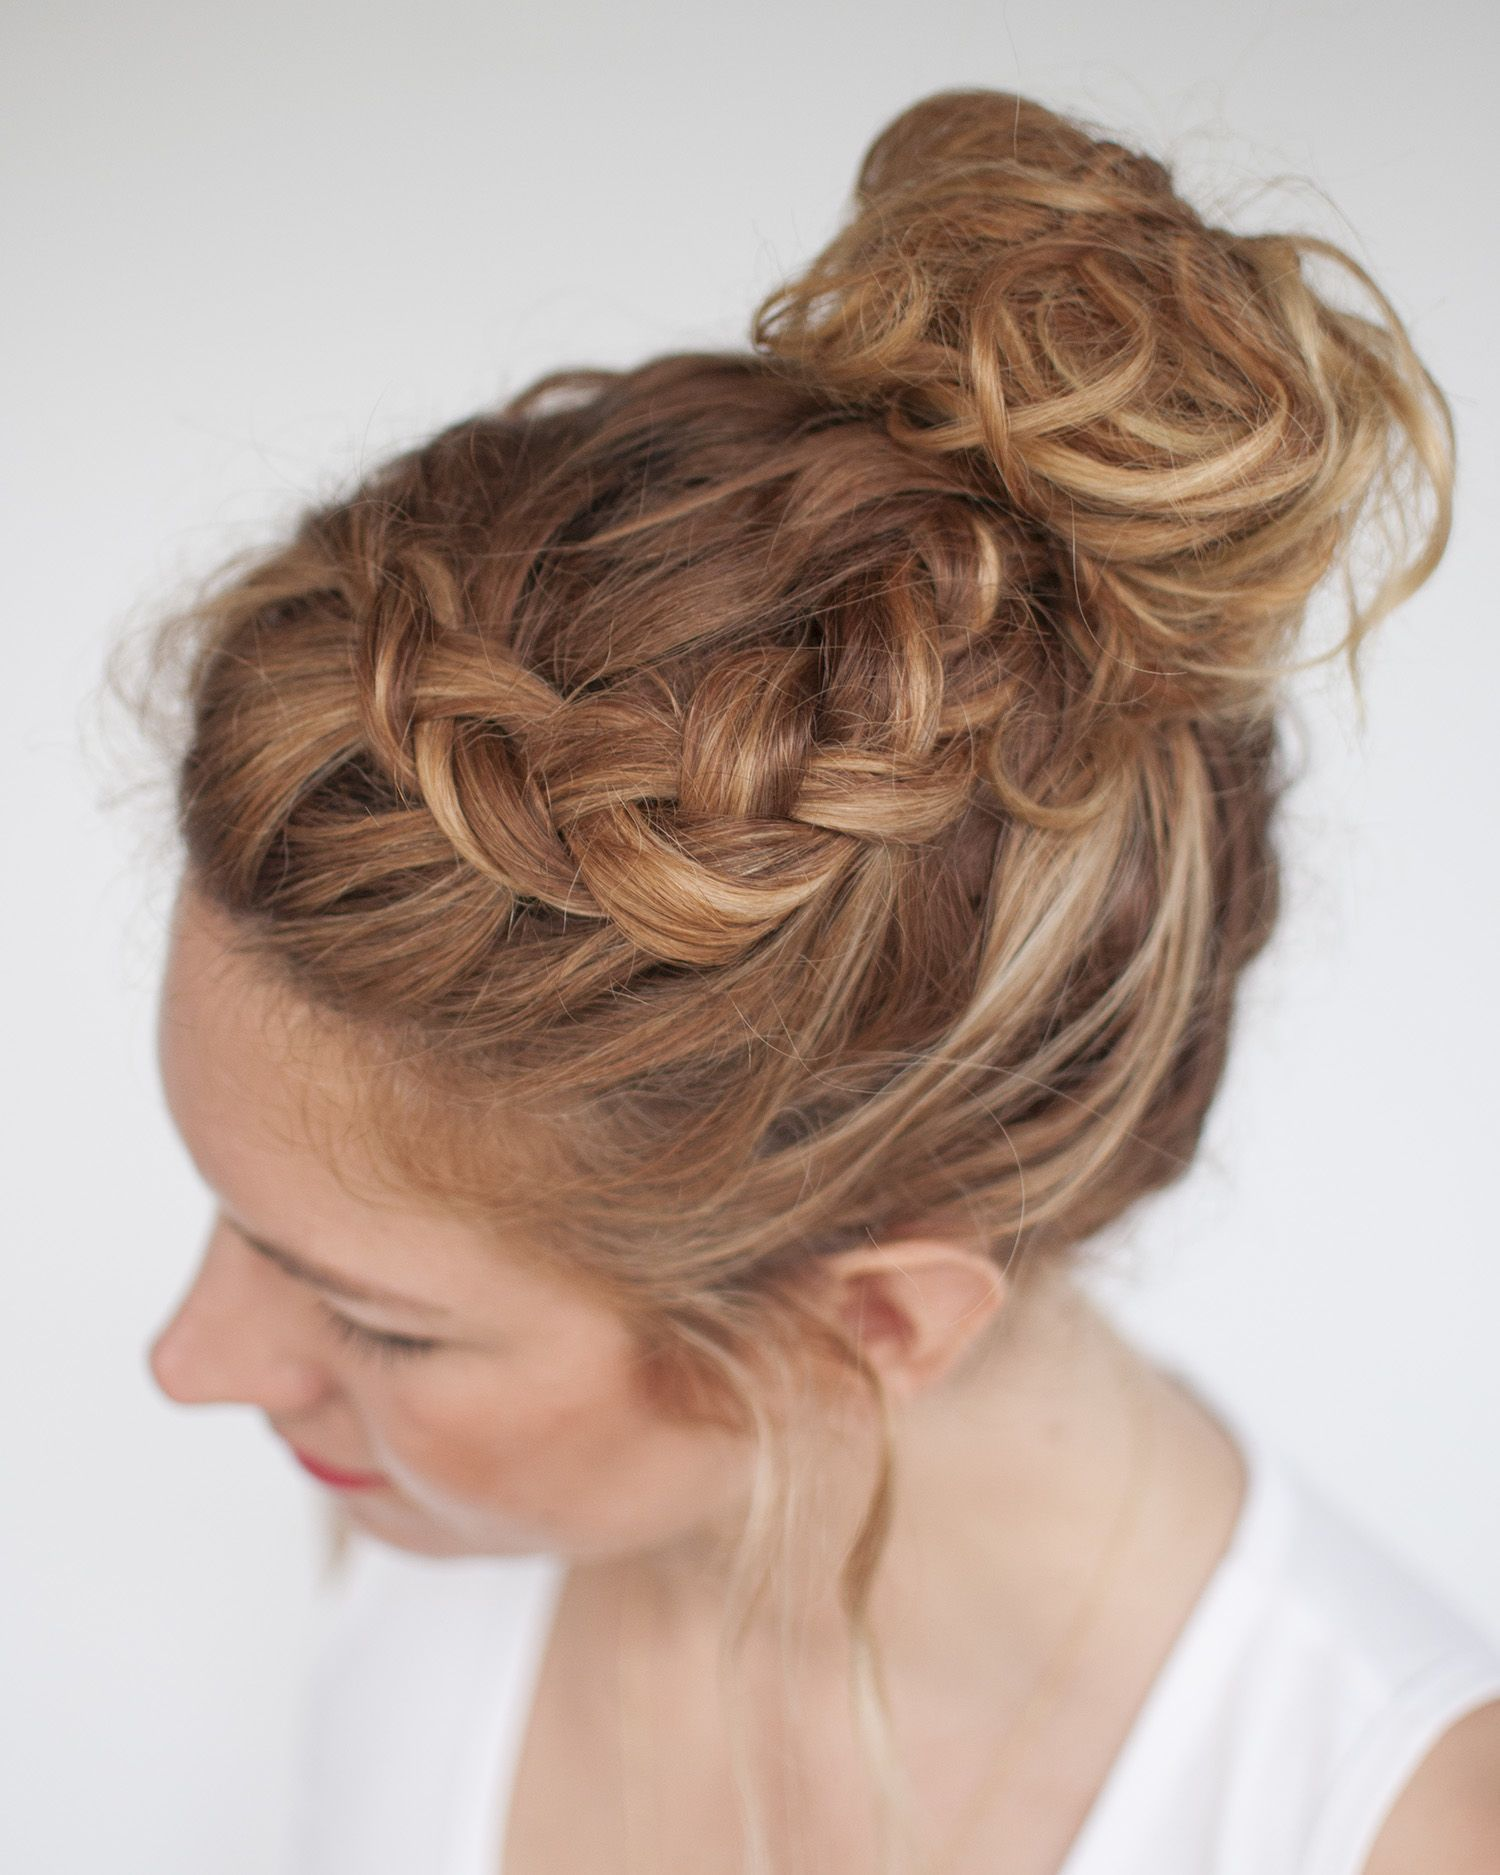 For those days when you want to throw all your hair up in a topknot a quick braid at the front adds in a pretty detail. Plus it hides the fact you should have washed your hair haha xx